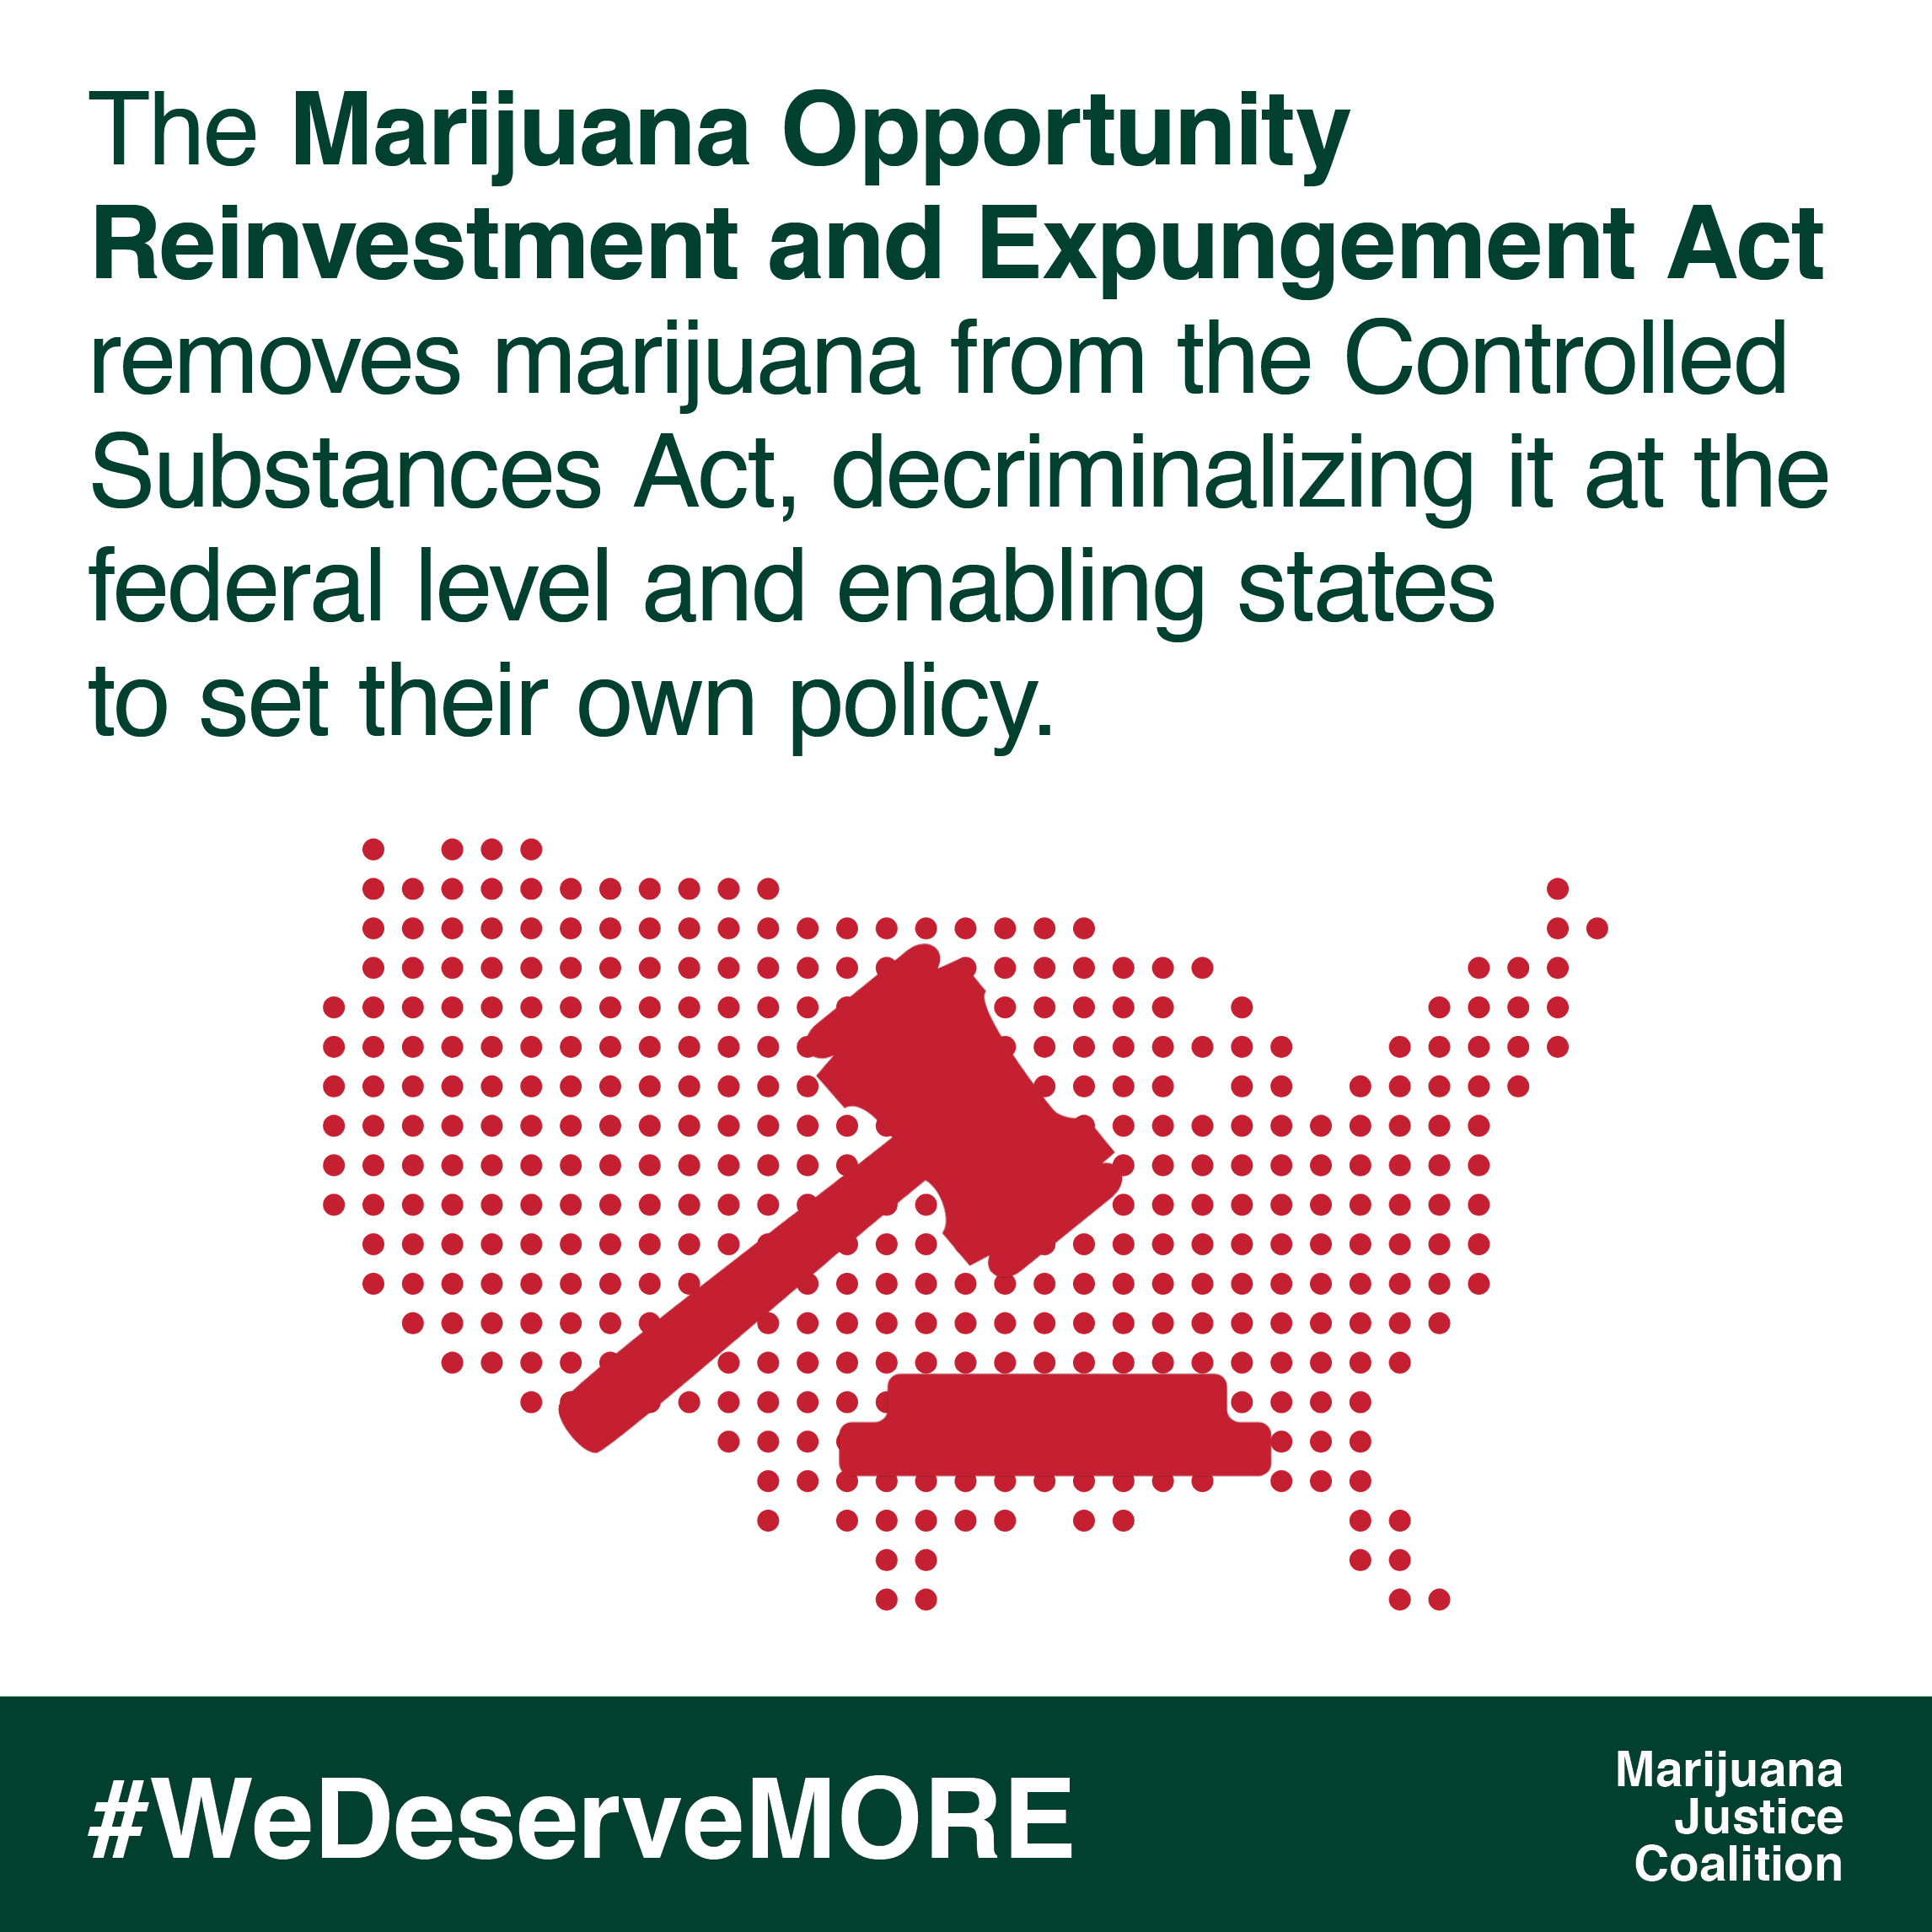 The Marijuana Opportunity Reinvestment and Expungement Act removes marijuana from the Controlled Substances Act, decriminalizing it at the federal level and enabling states to set their own policy.